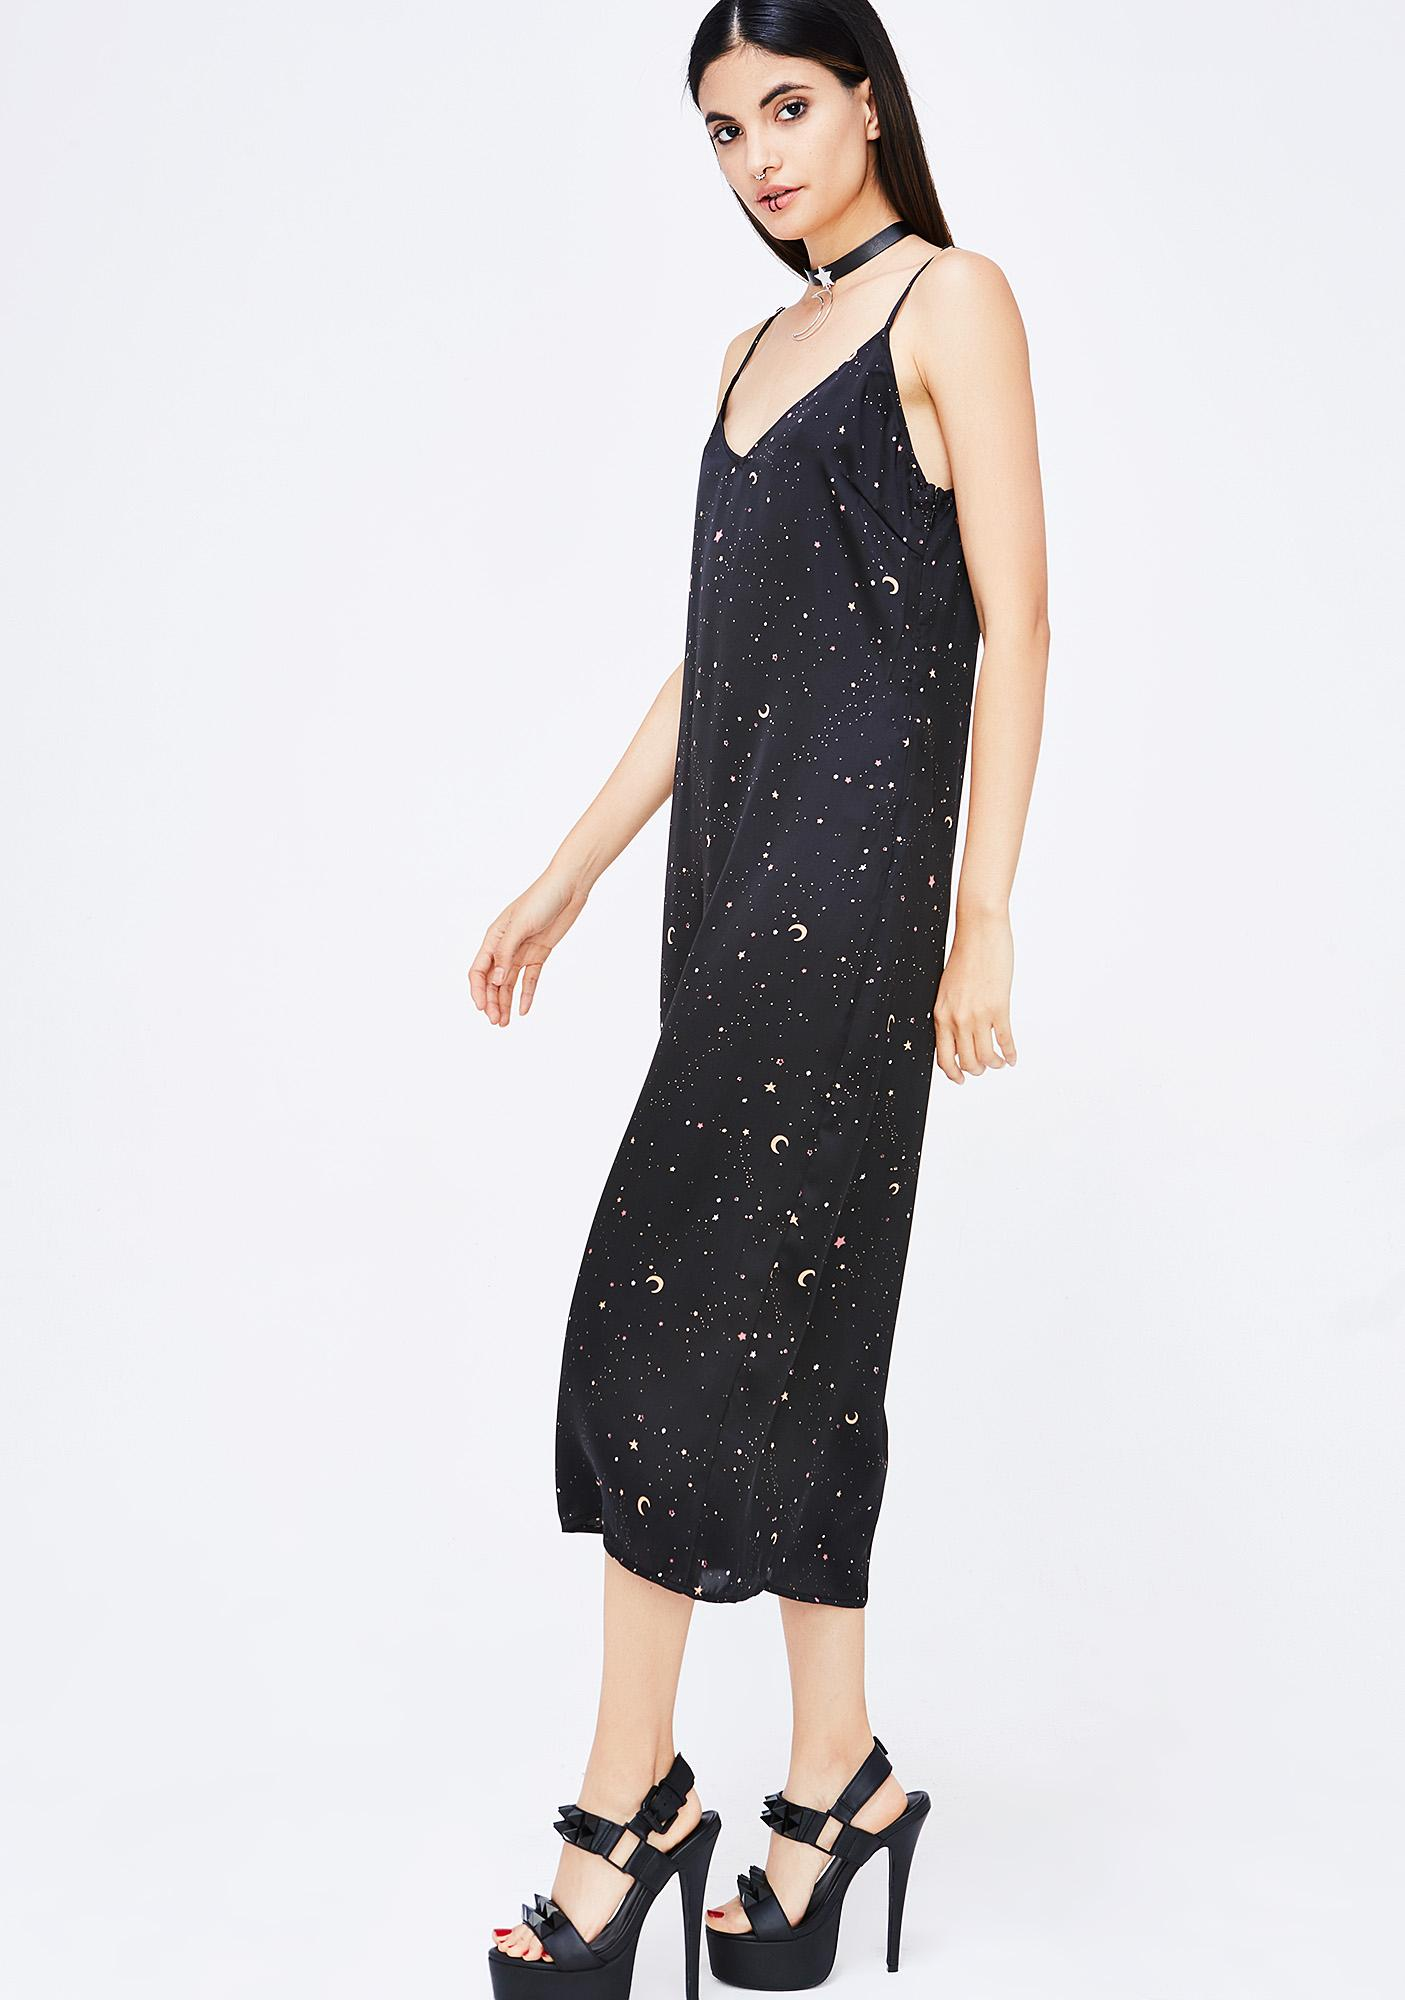 Starry Lights Slip Dress